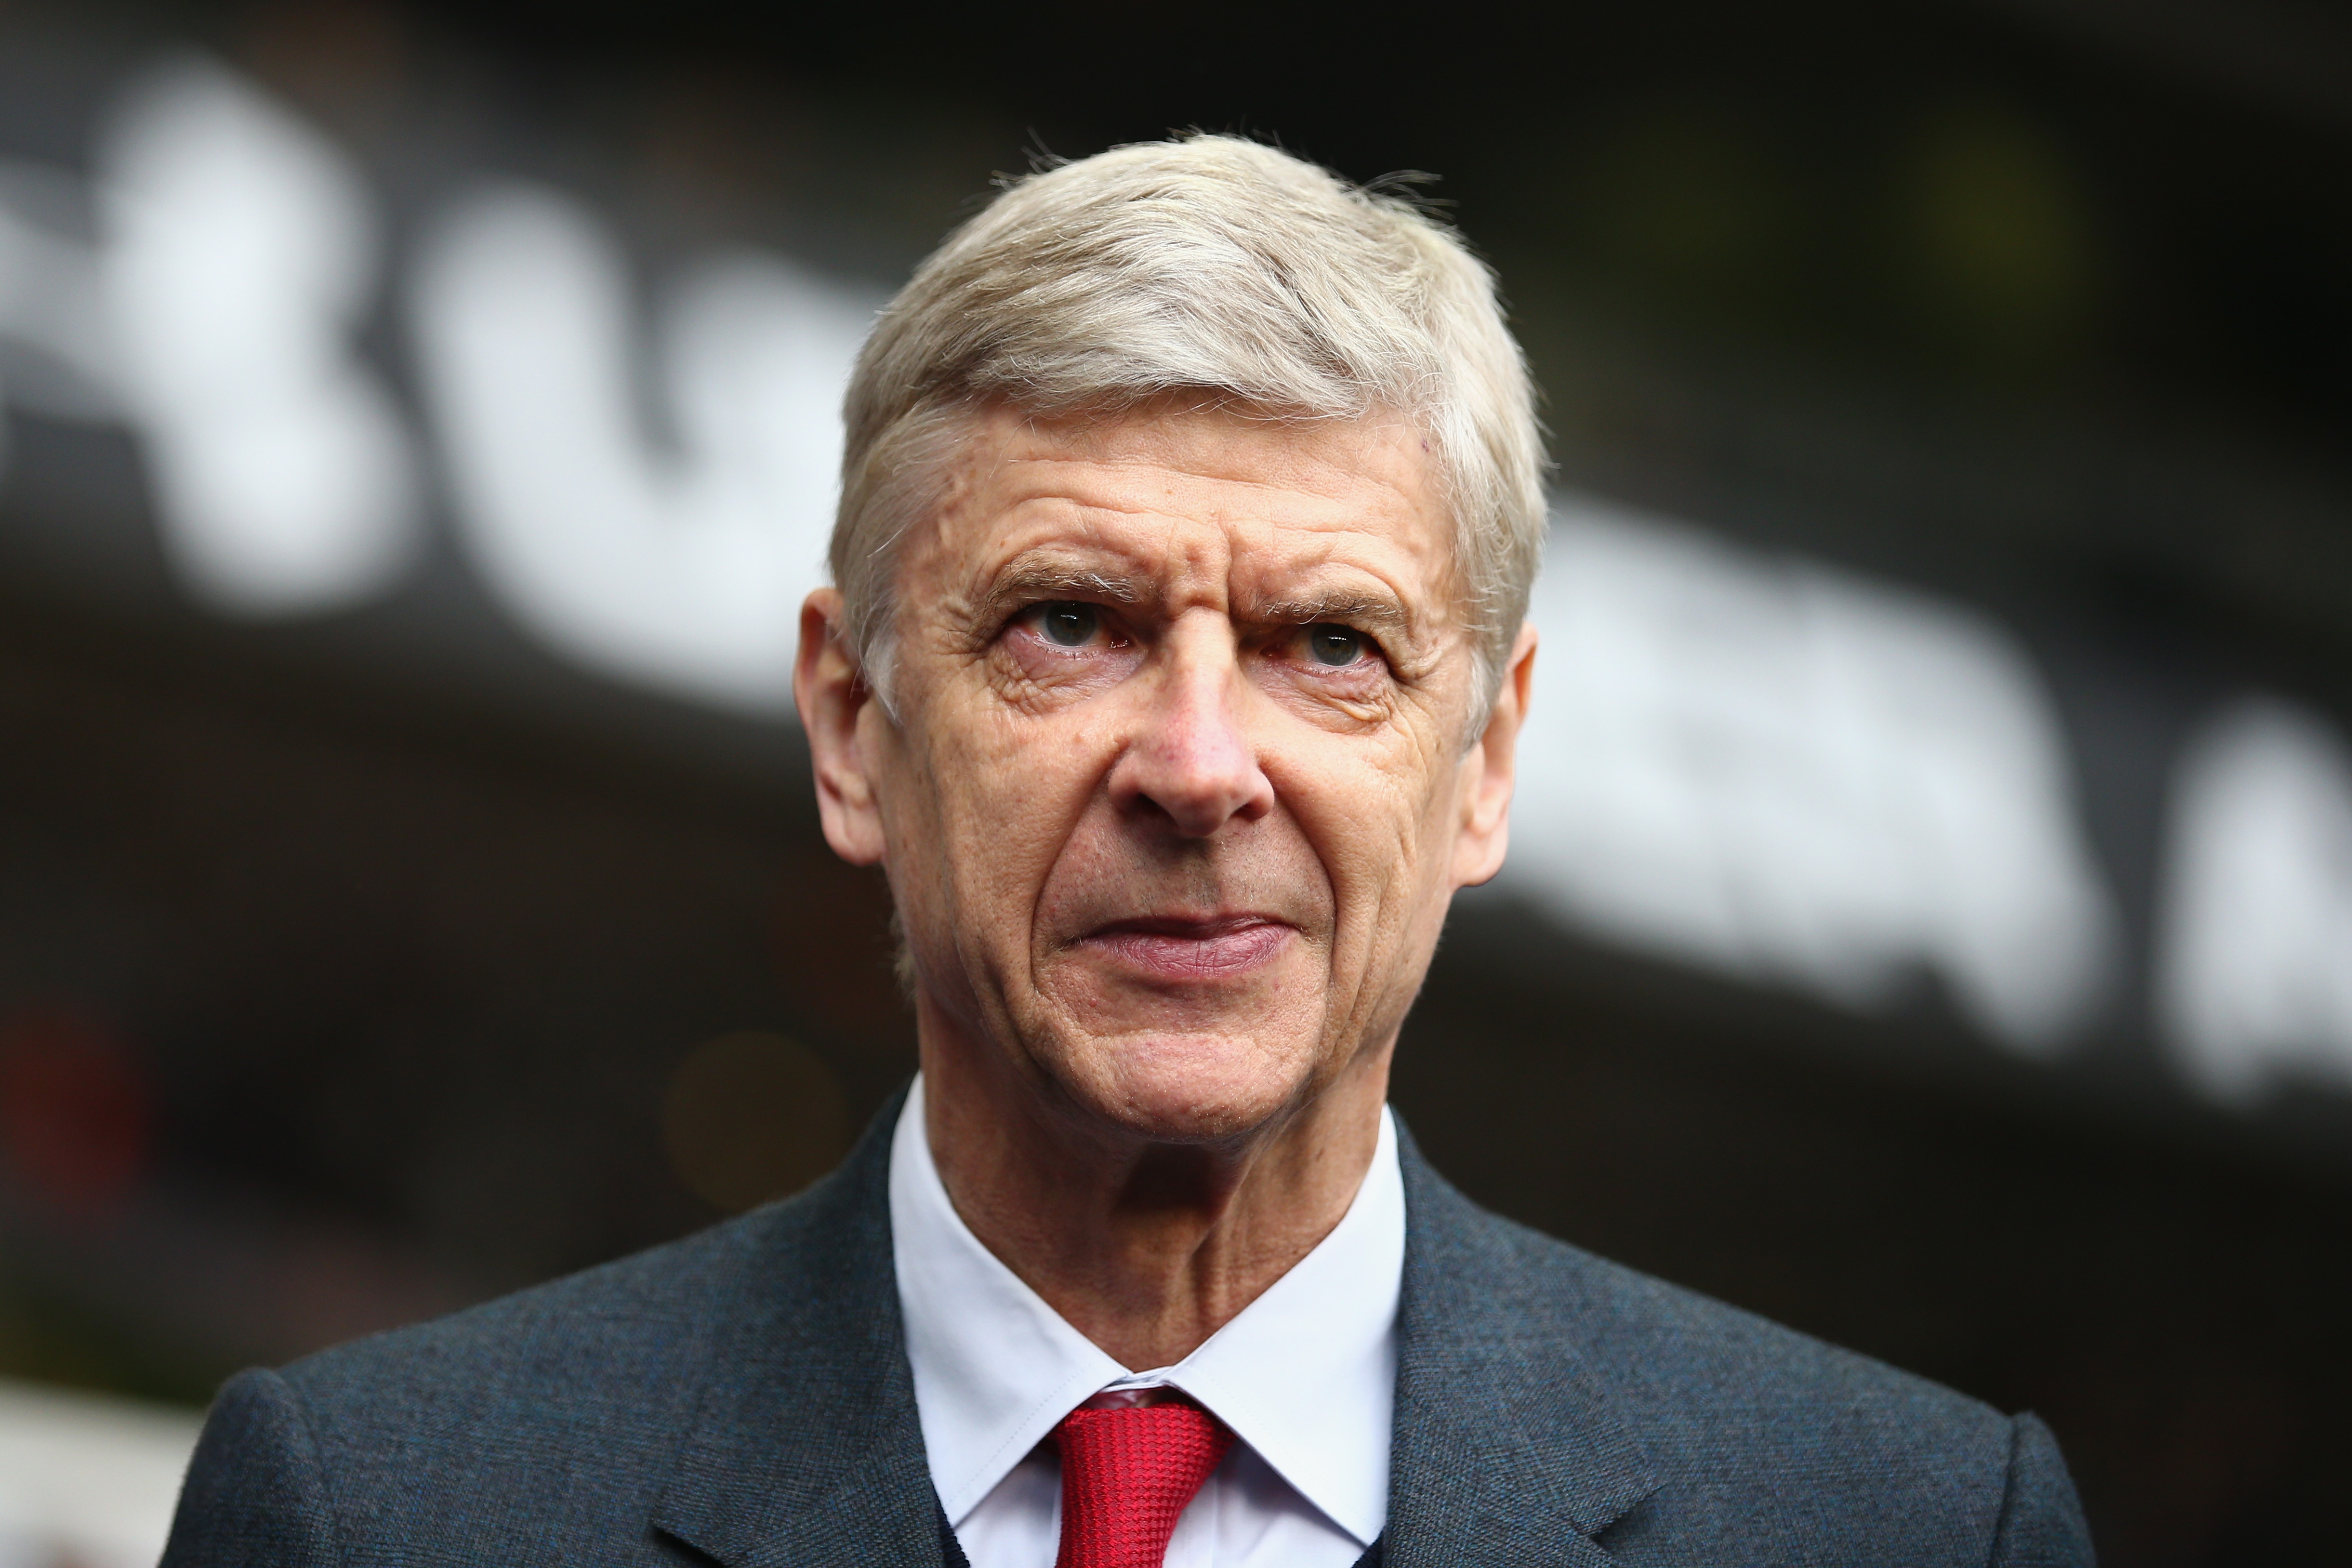 Arsene Wenger tried to sign me, reveals Liverpool legend Robbie Fowler